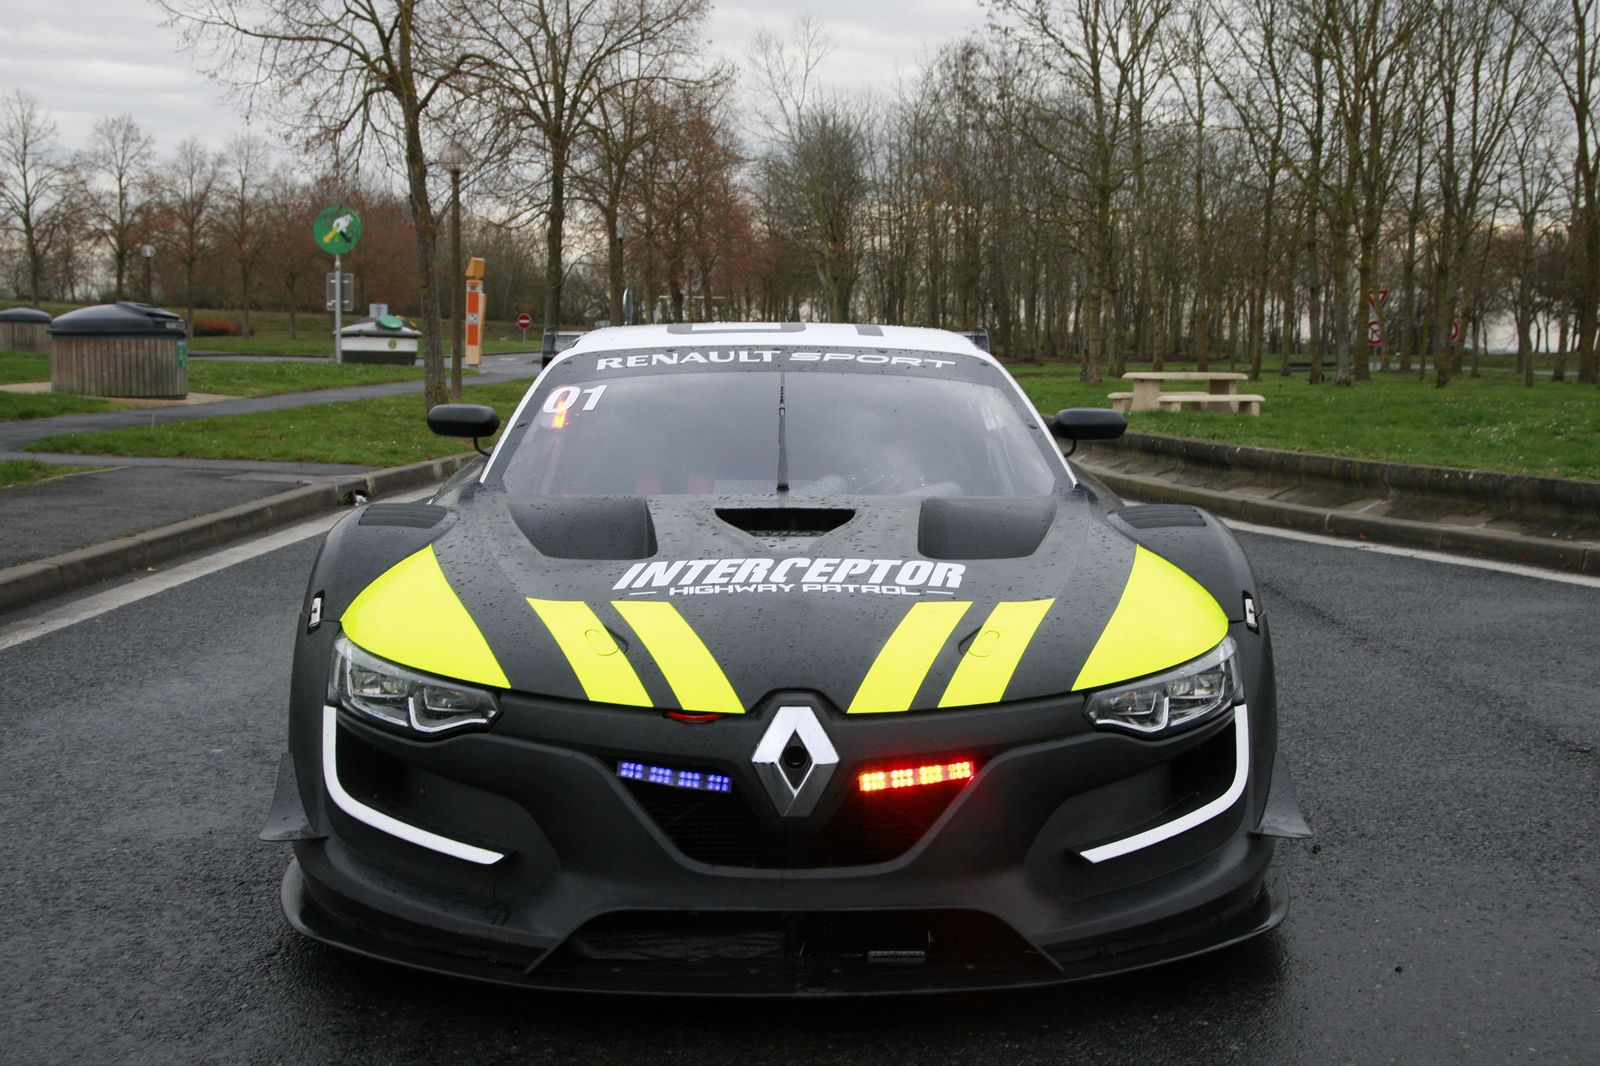 La Renault R S 01 En Mode Interceptor